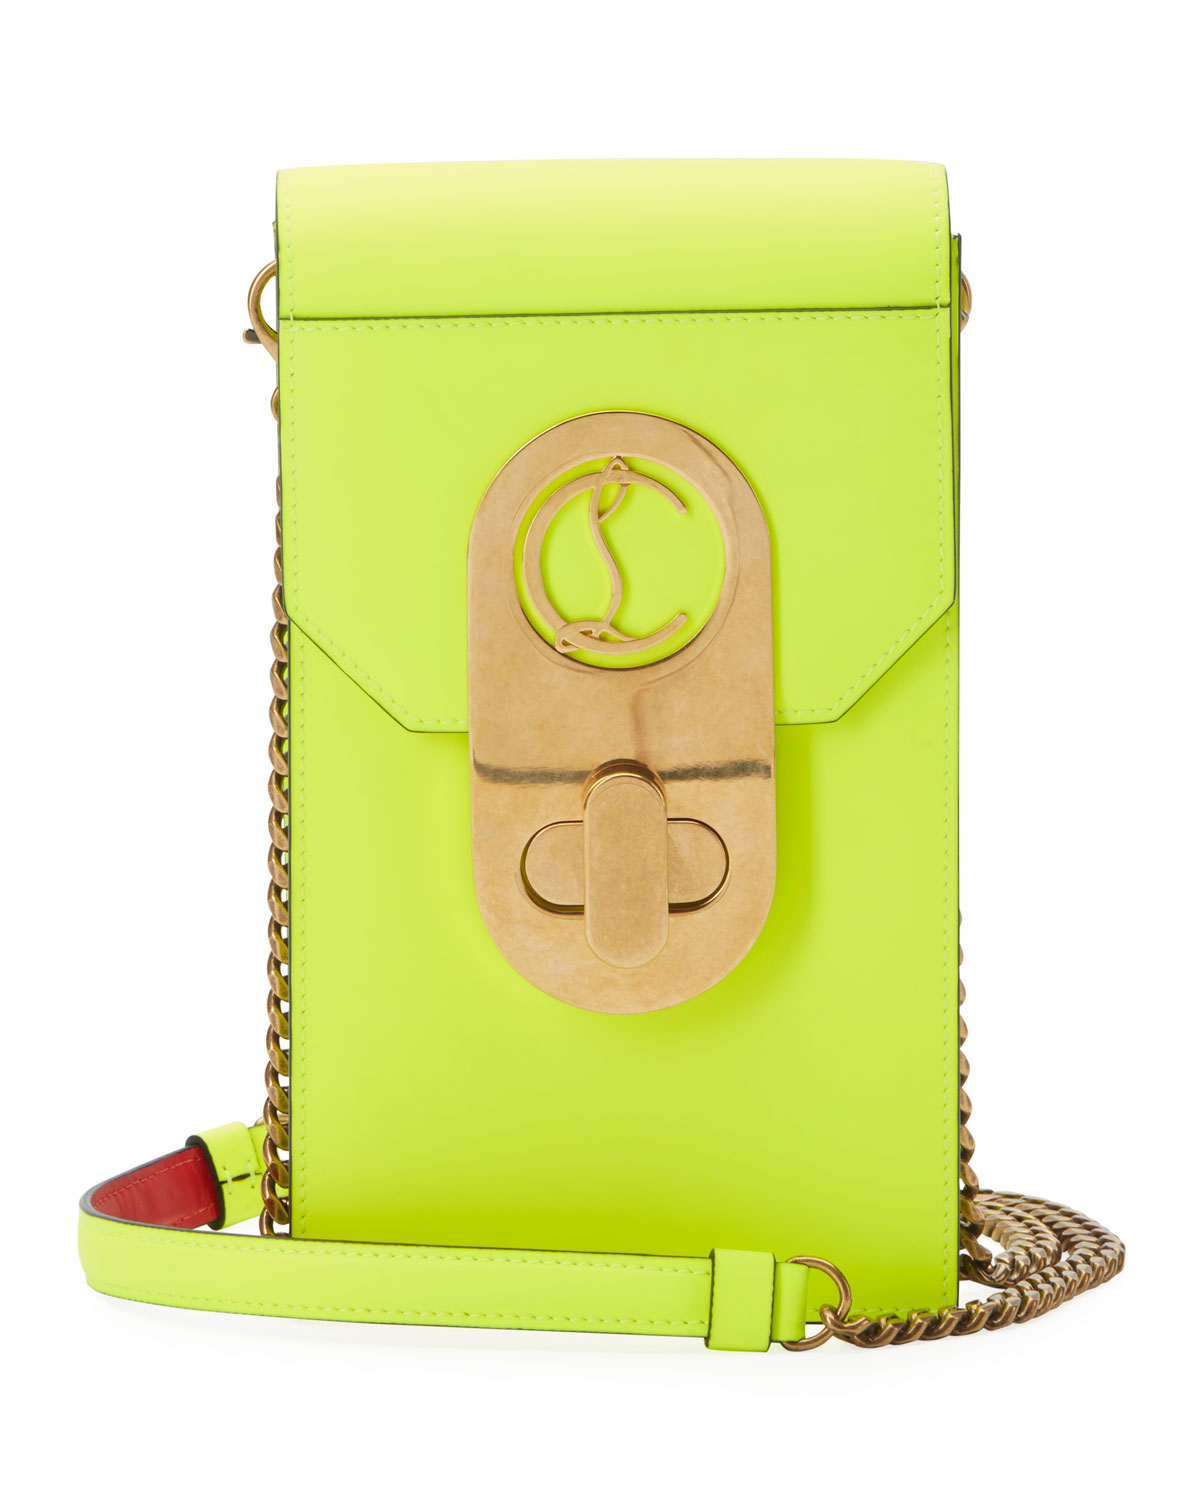 Christian Louboutin Elisa Leather Phone Pouch Case